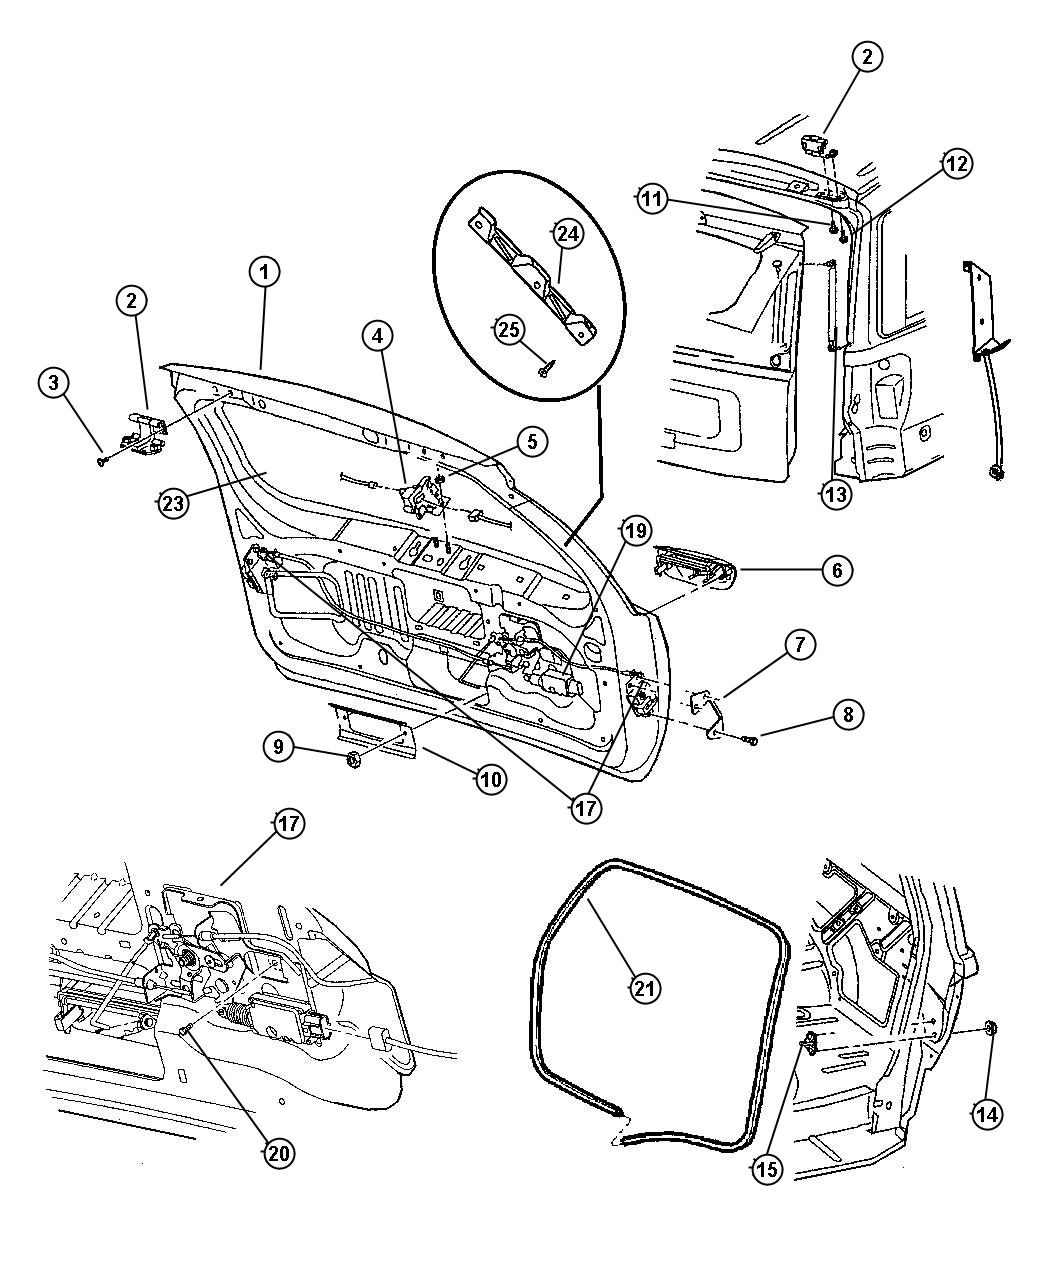 Dodge Ram Sel Engine Diagram Wiring Diagram